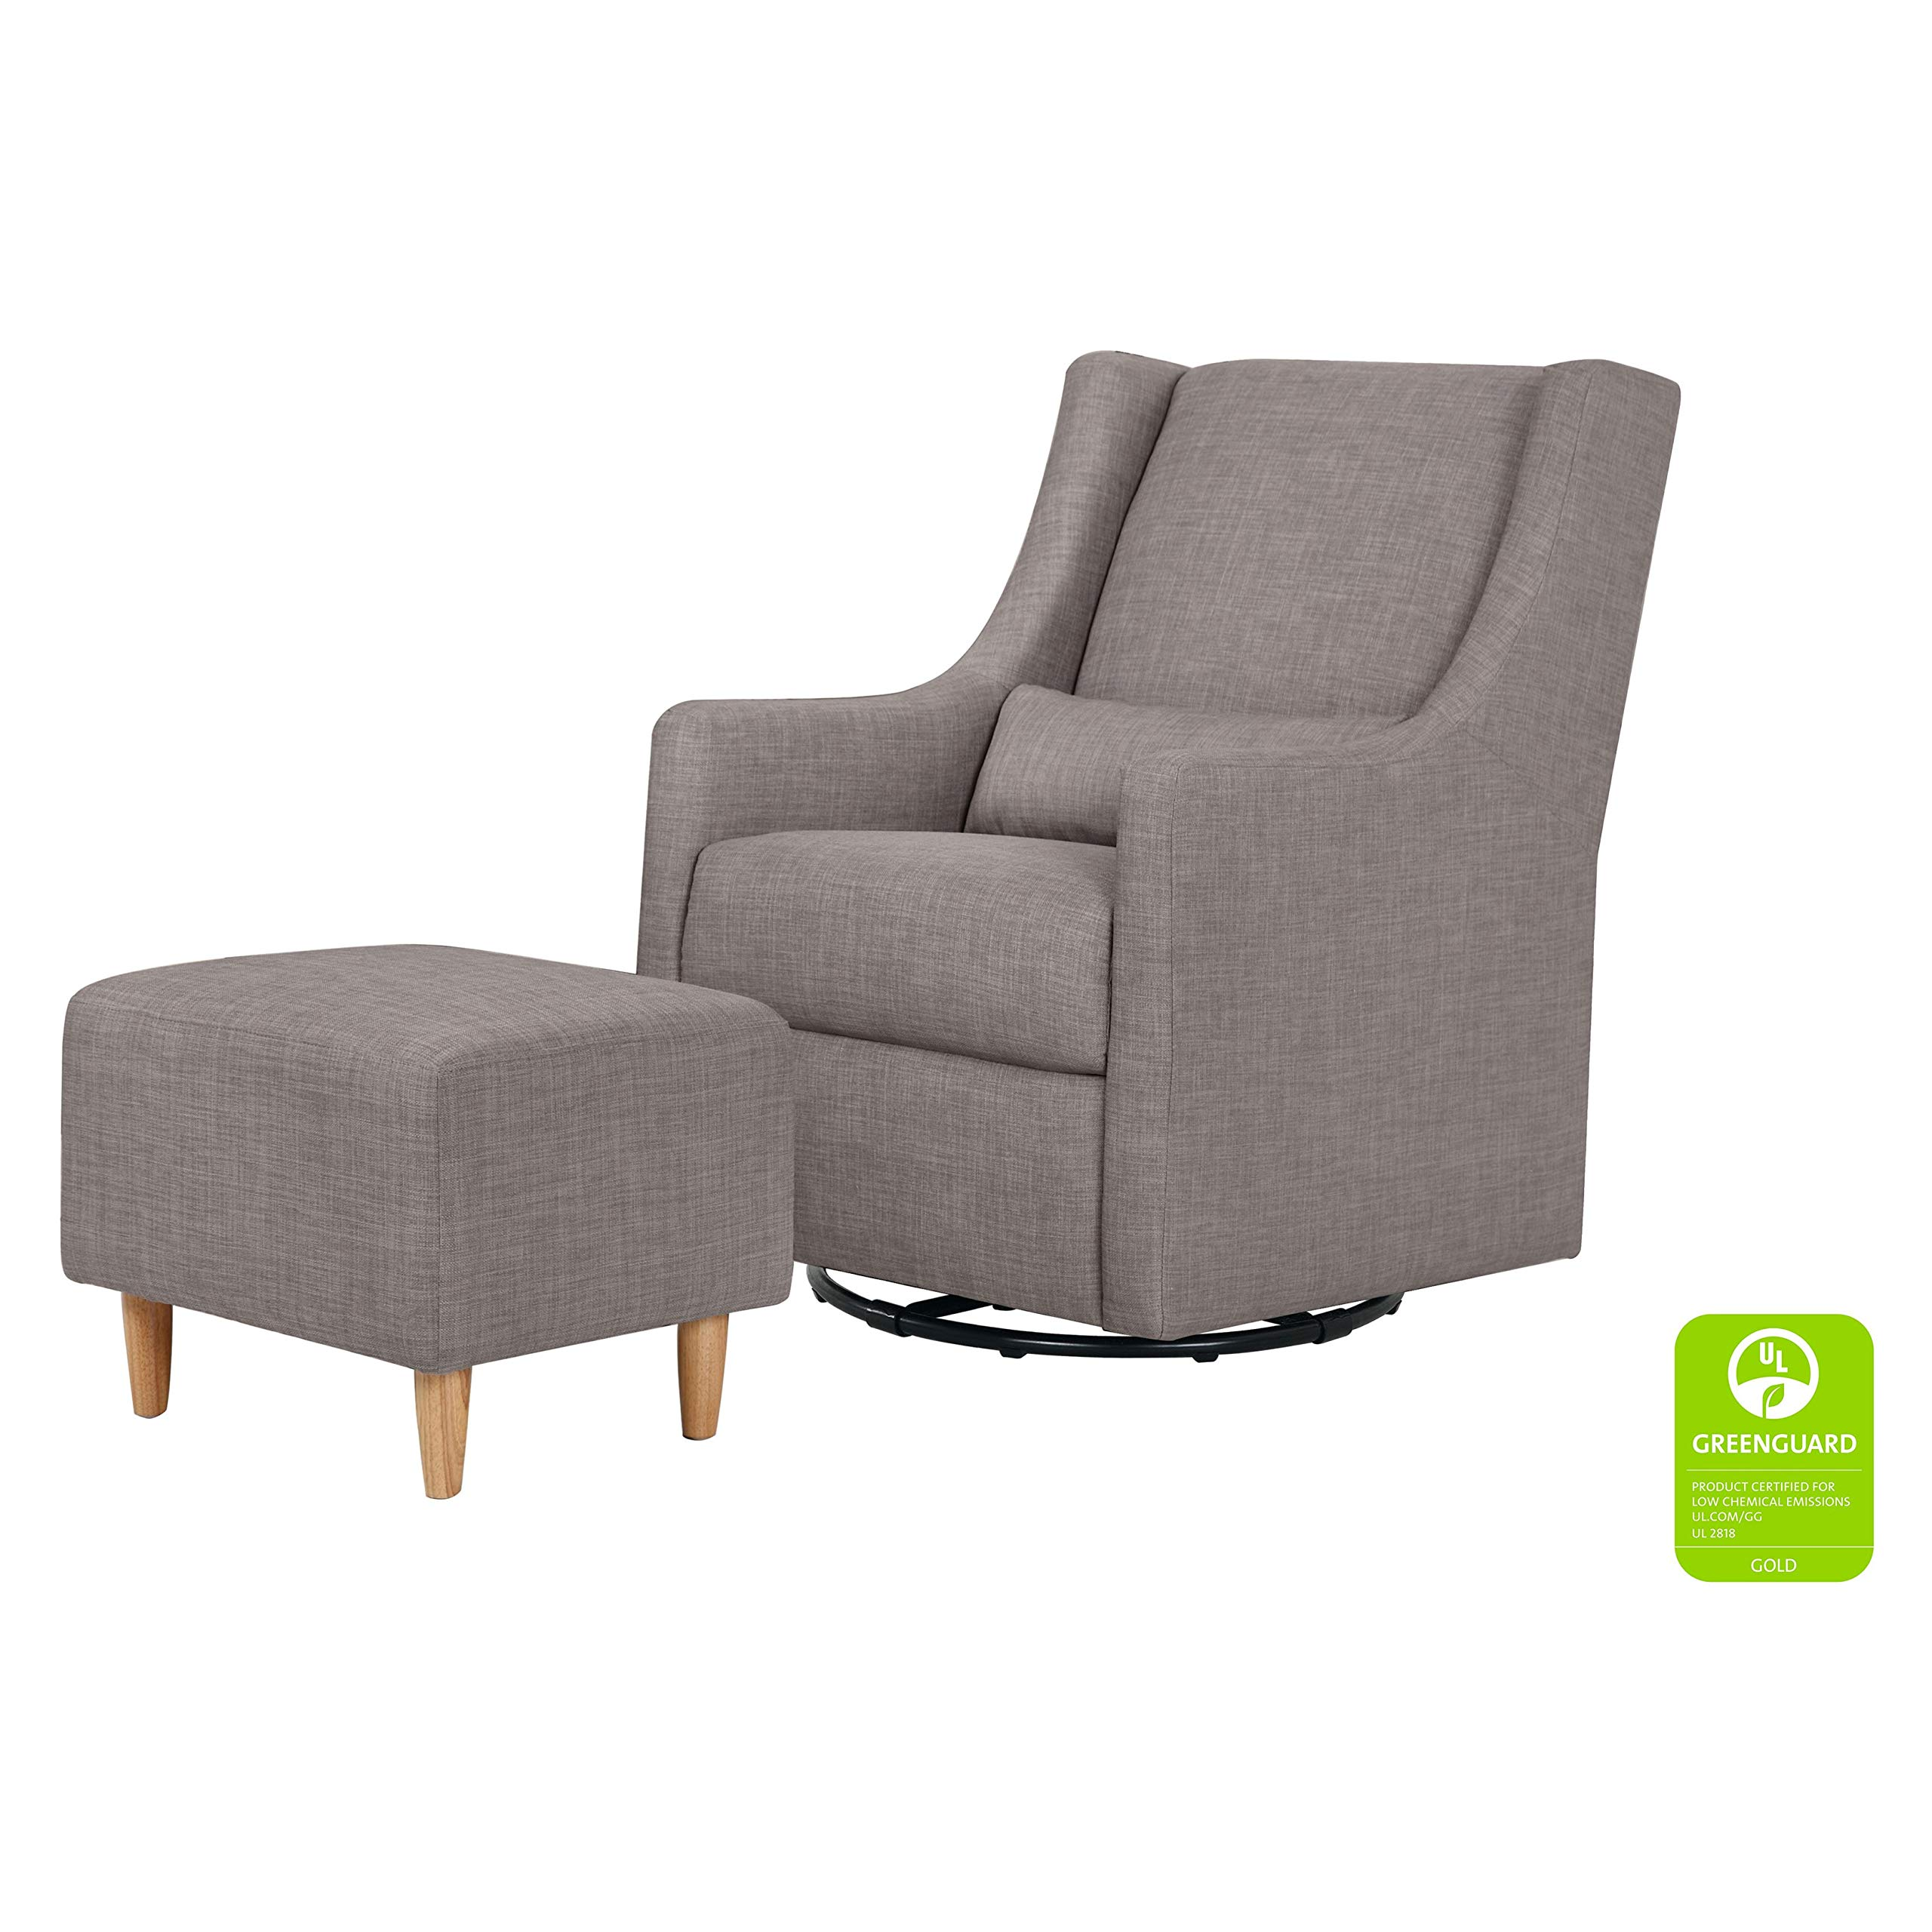 Babyletto Toco Upholstered Swivel Glider and Stationary Ottoman, Grey Tweed by babyletto